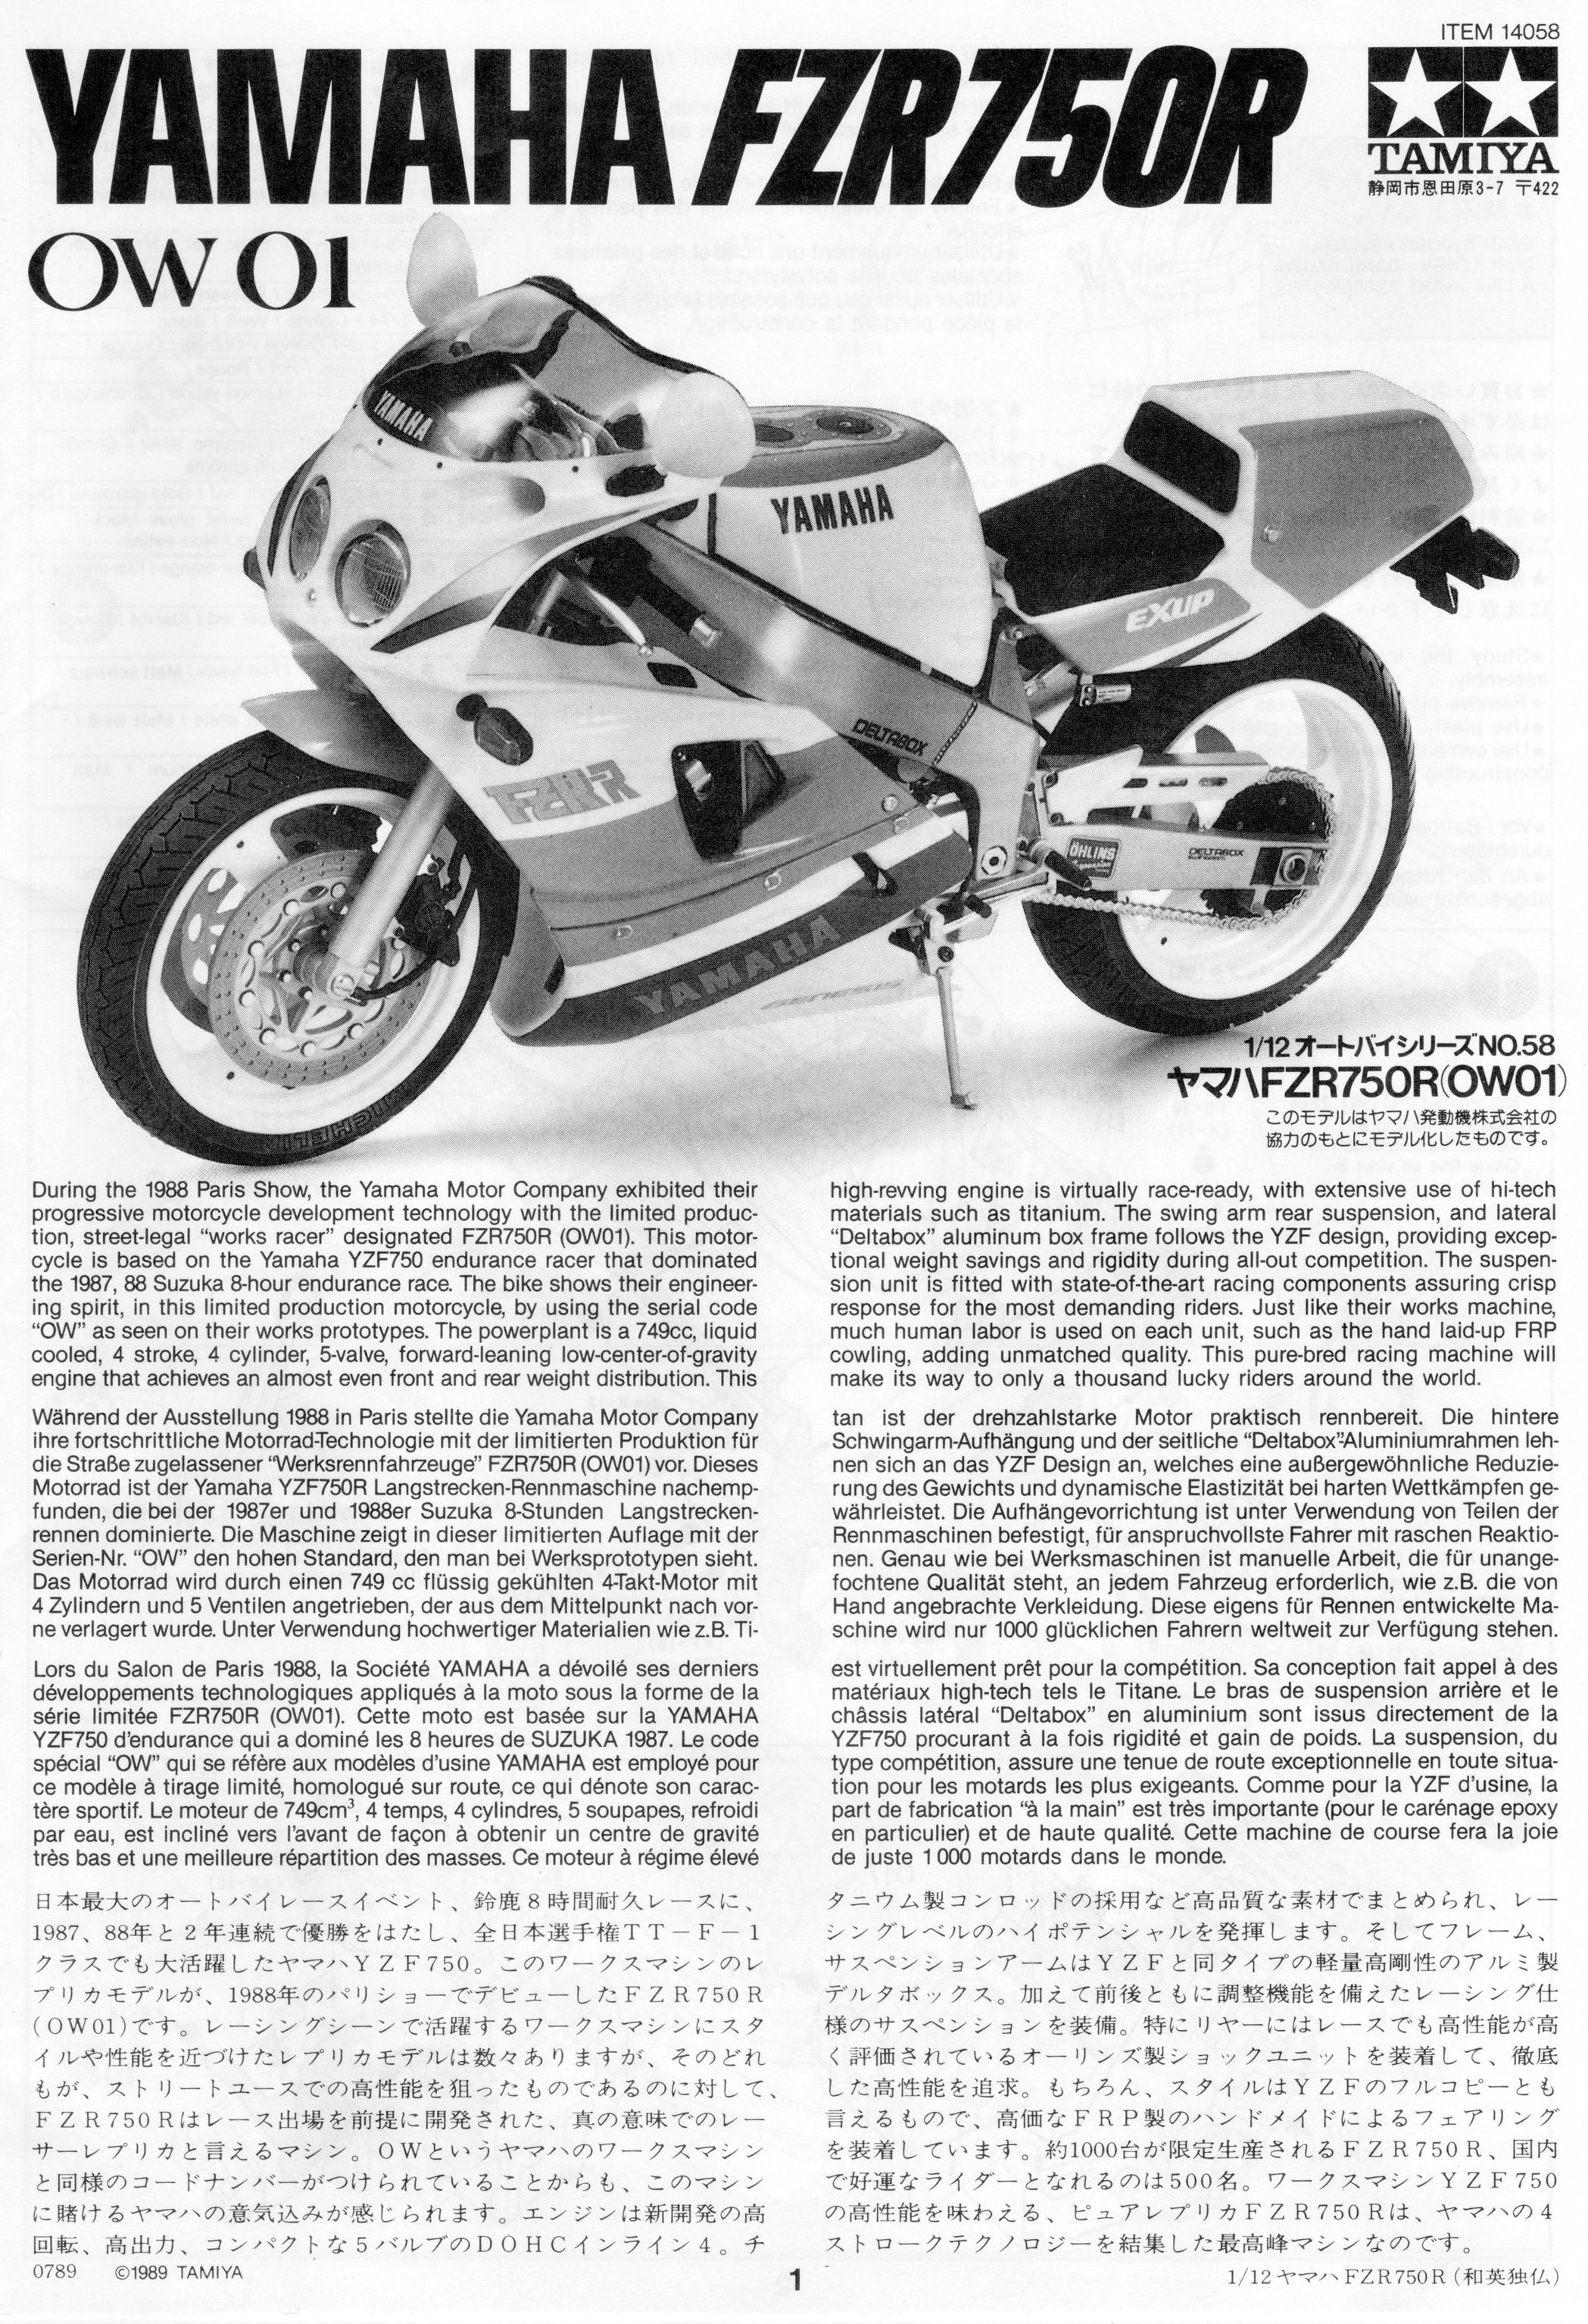 13 best Tamiya 1/12 Yamaha FZR750R images on Pinterest | Tamiya, Decal and  Decals